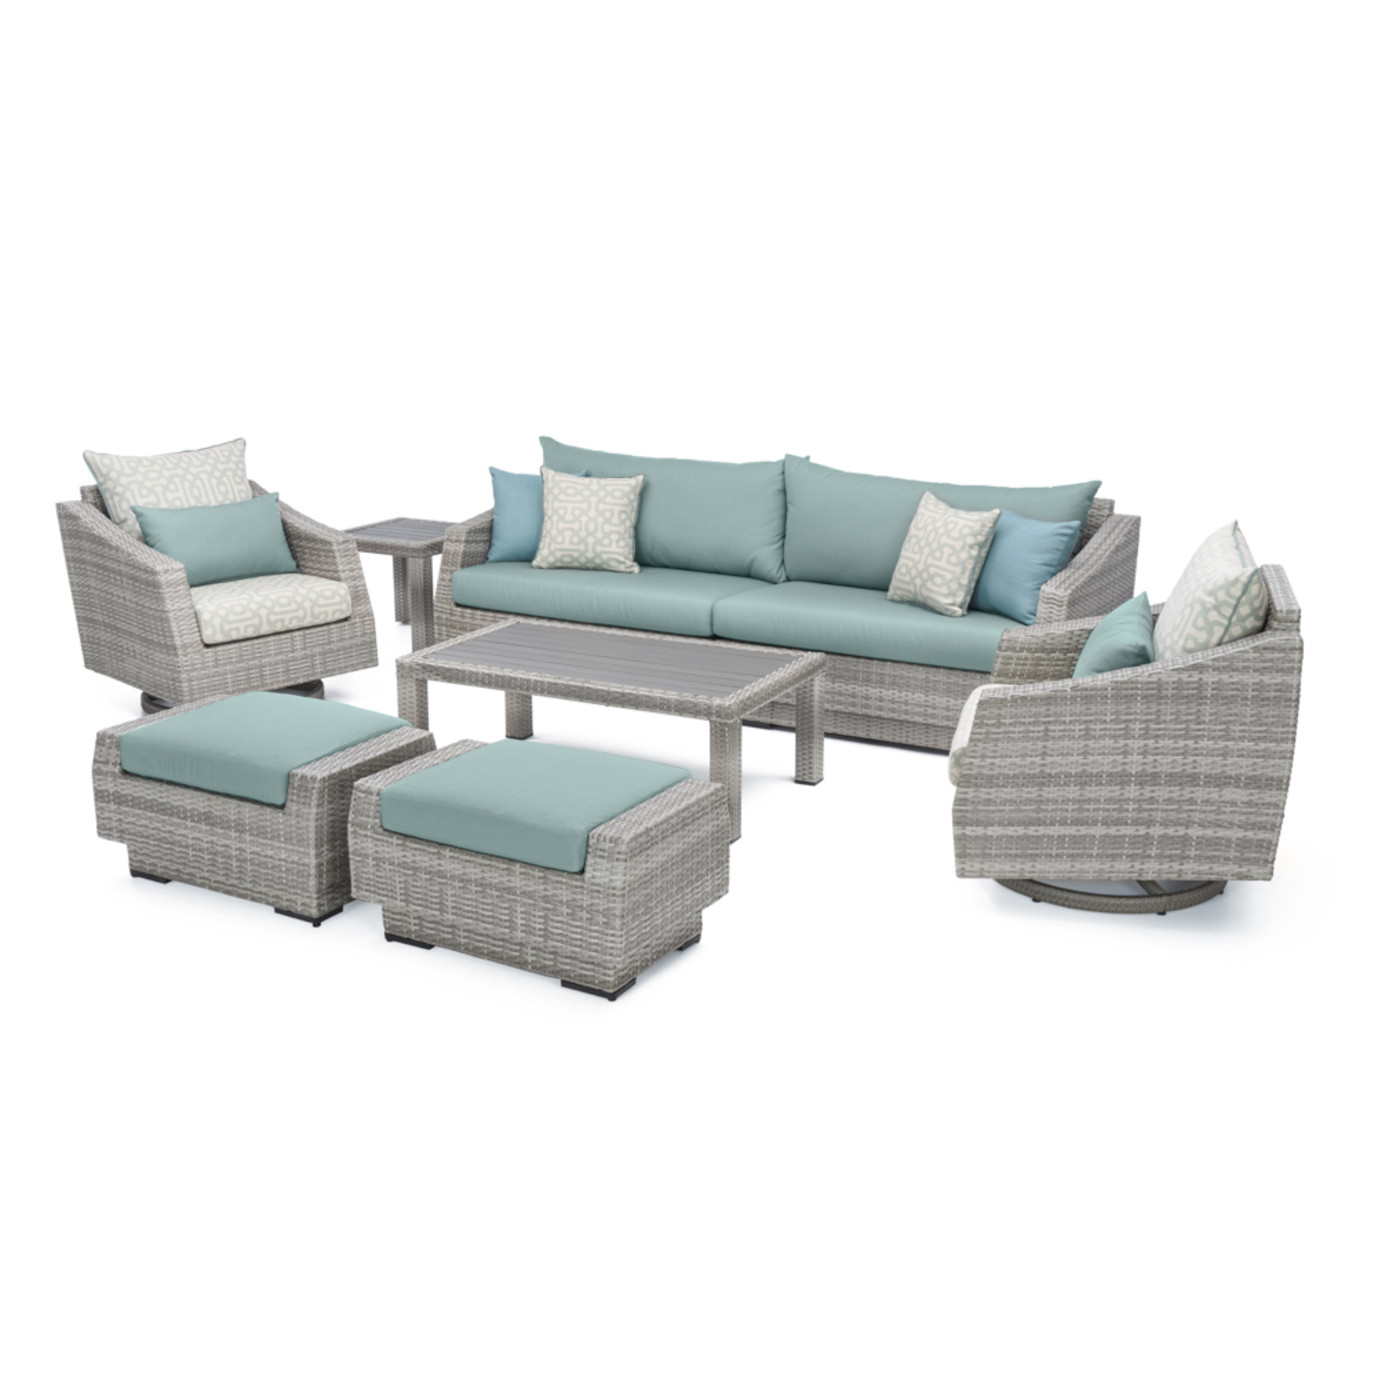 Cannes™ Deluxe 8pc Sofa & Motion Club Chair Set - Spa Blue